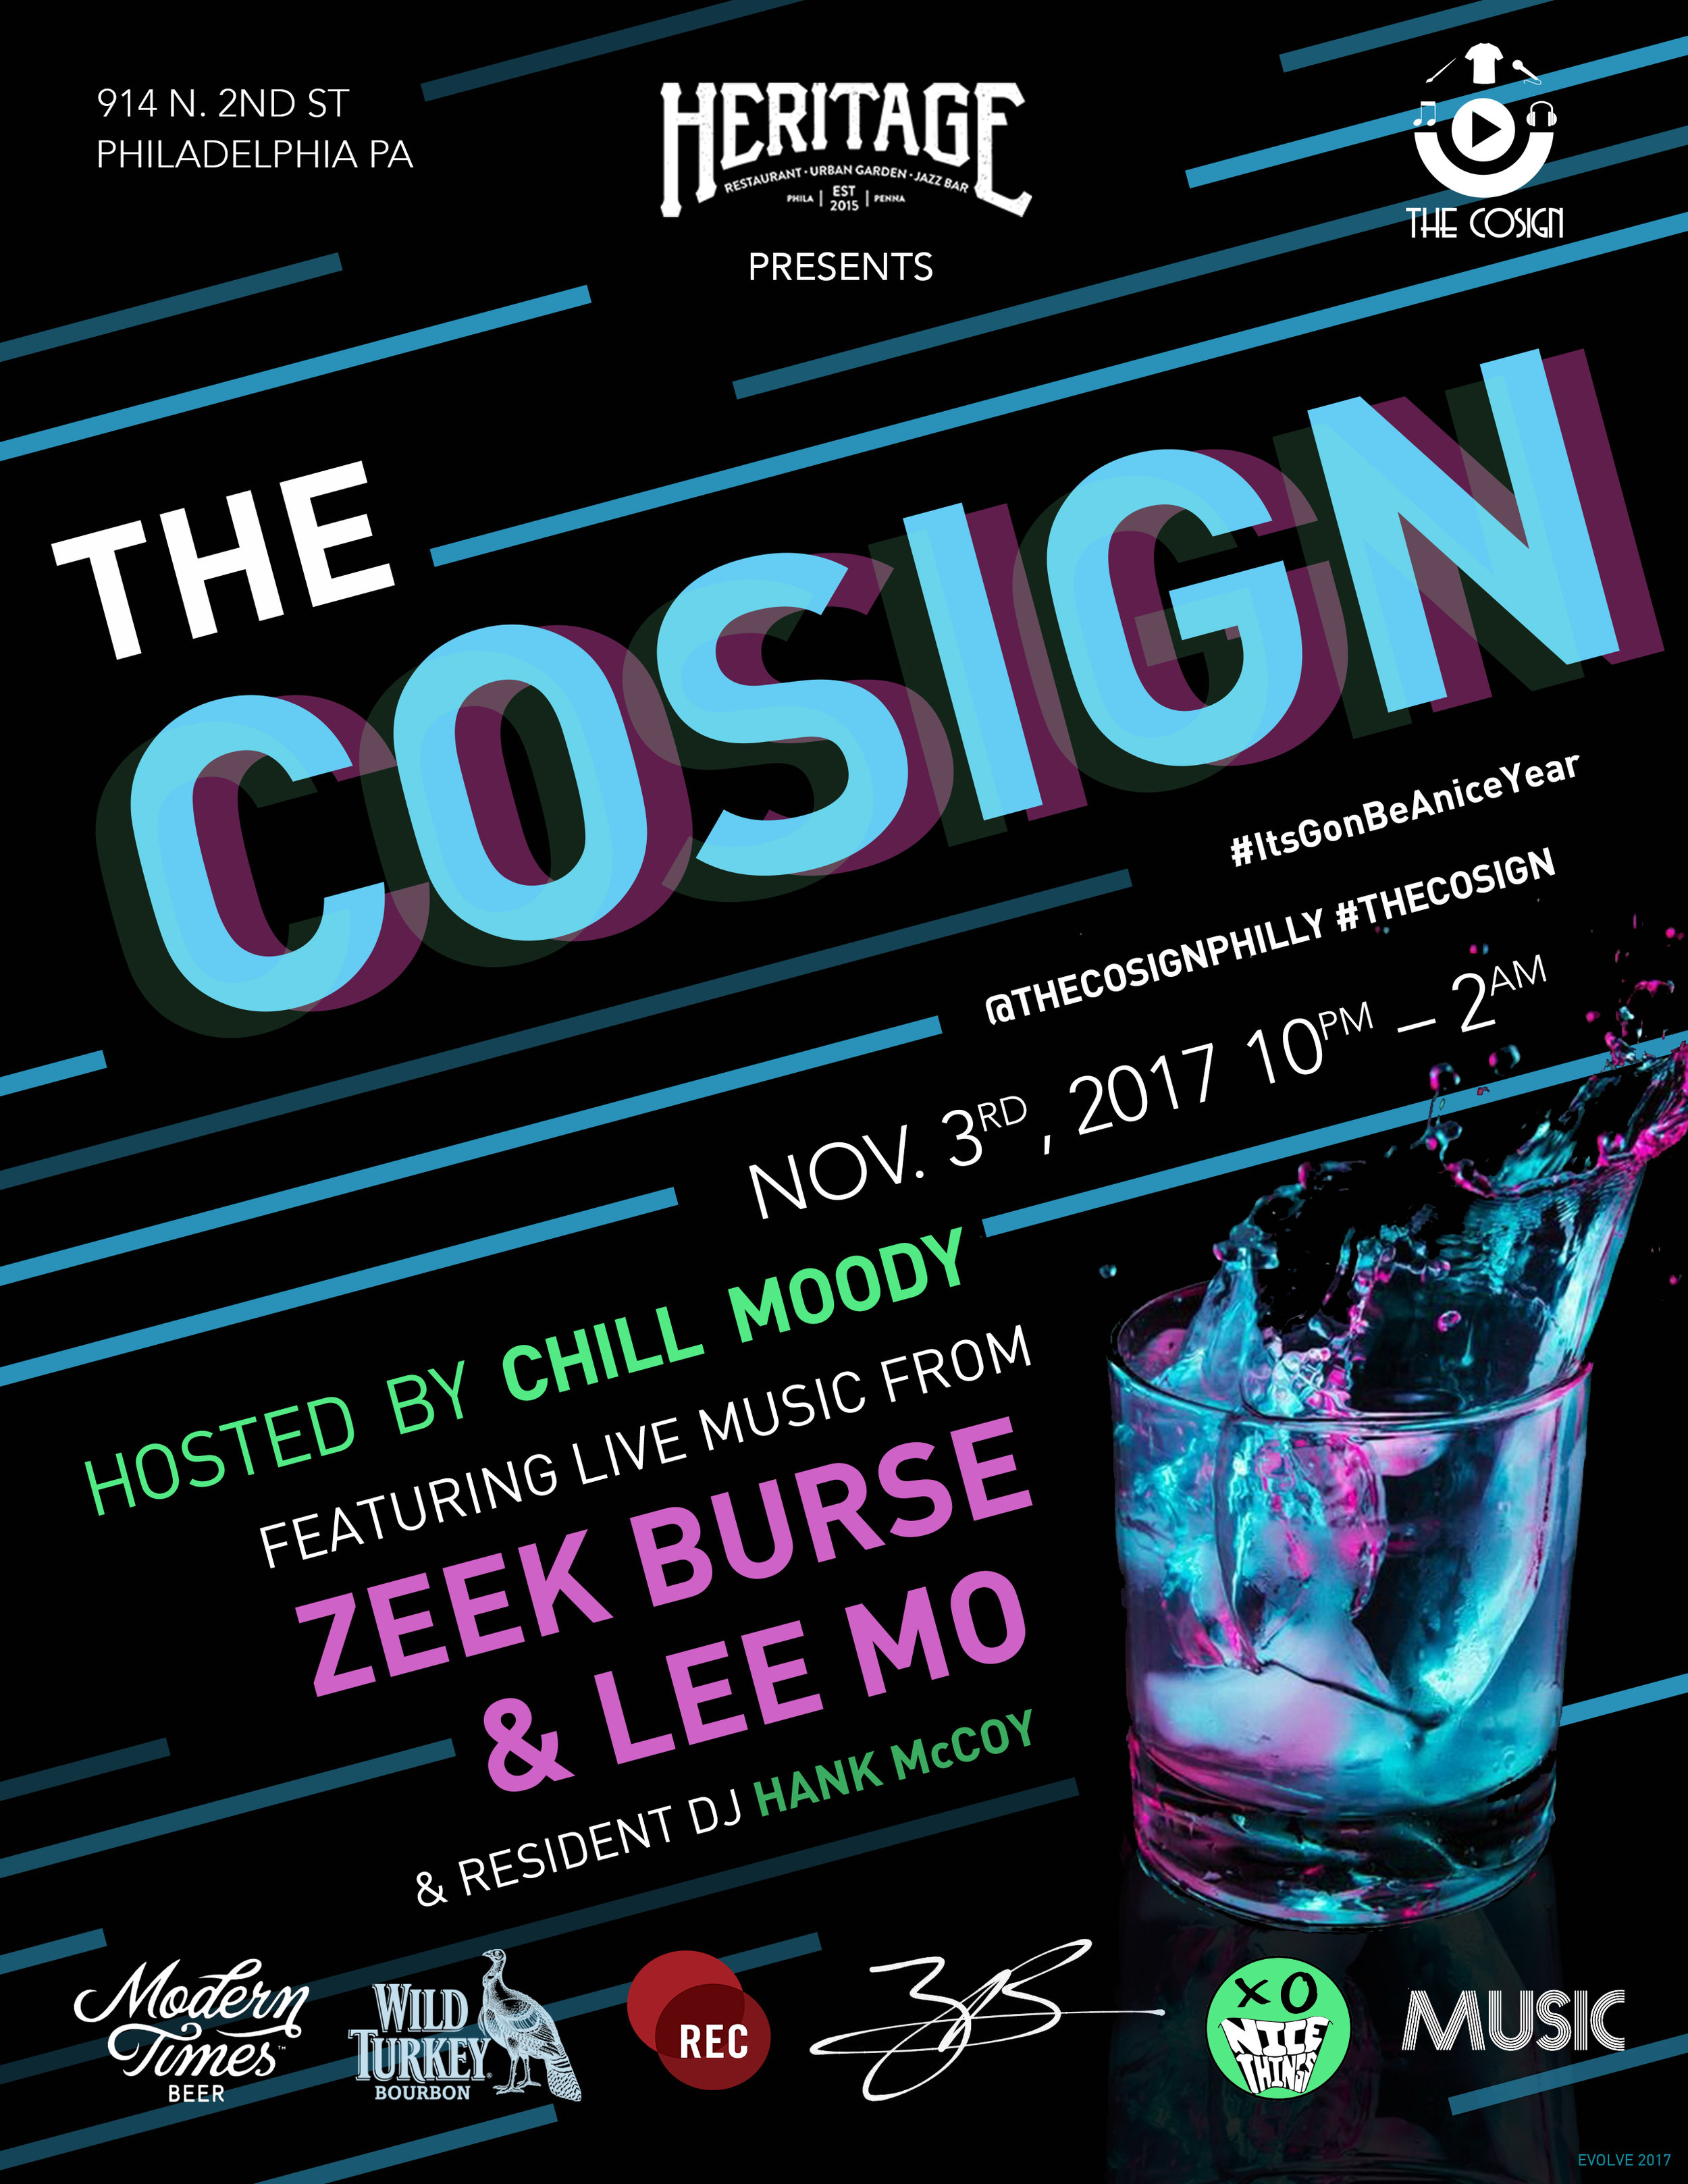 THE COSIGN - Friday 11.03.17 10pm - 2am The Cosign @ Heritage 914 N 2nd Streetfeaturing: Zeek Burse , Lee Mo , RECPhillymusic by Hank McCoyhosted by Chill Moodypresented by nicethingsMUSIC